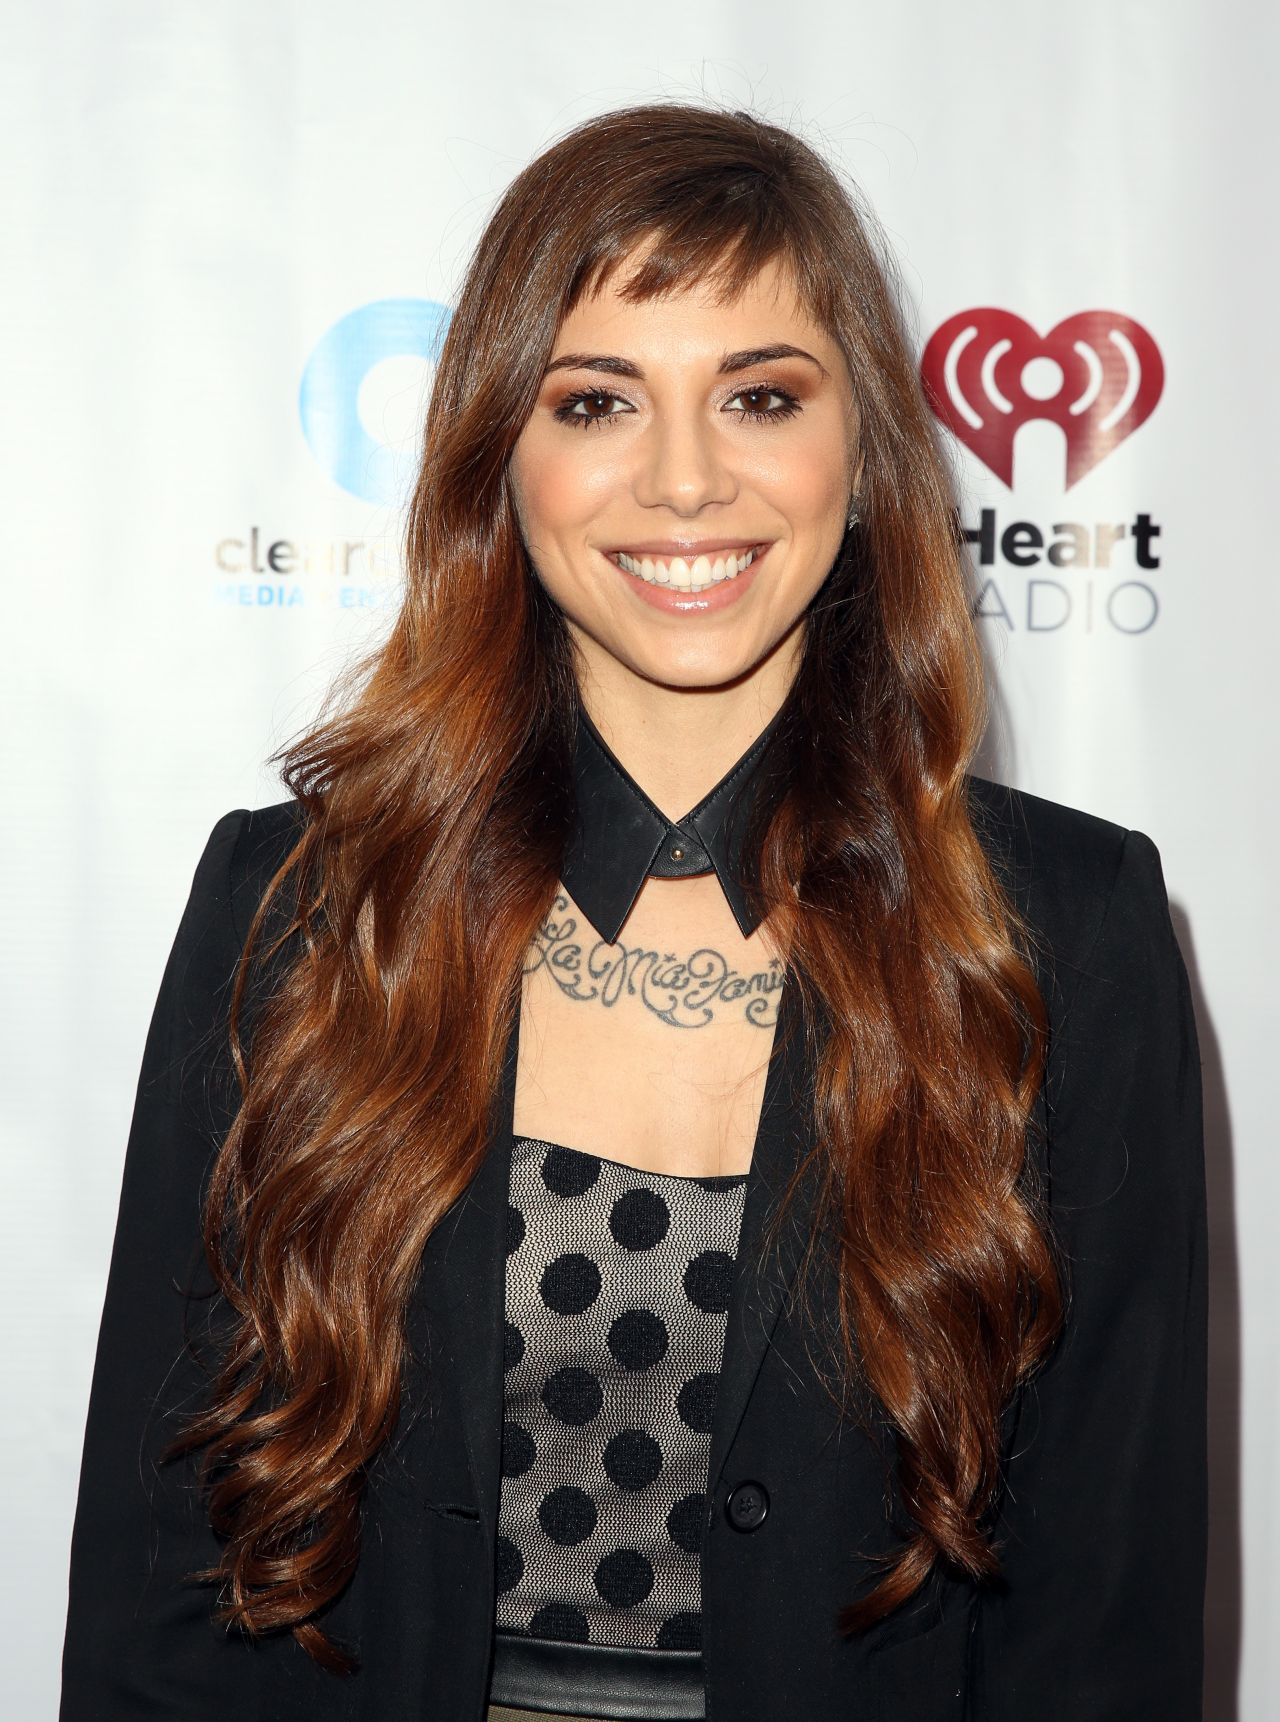 christina perri 2008 - photo #4